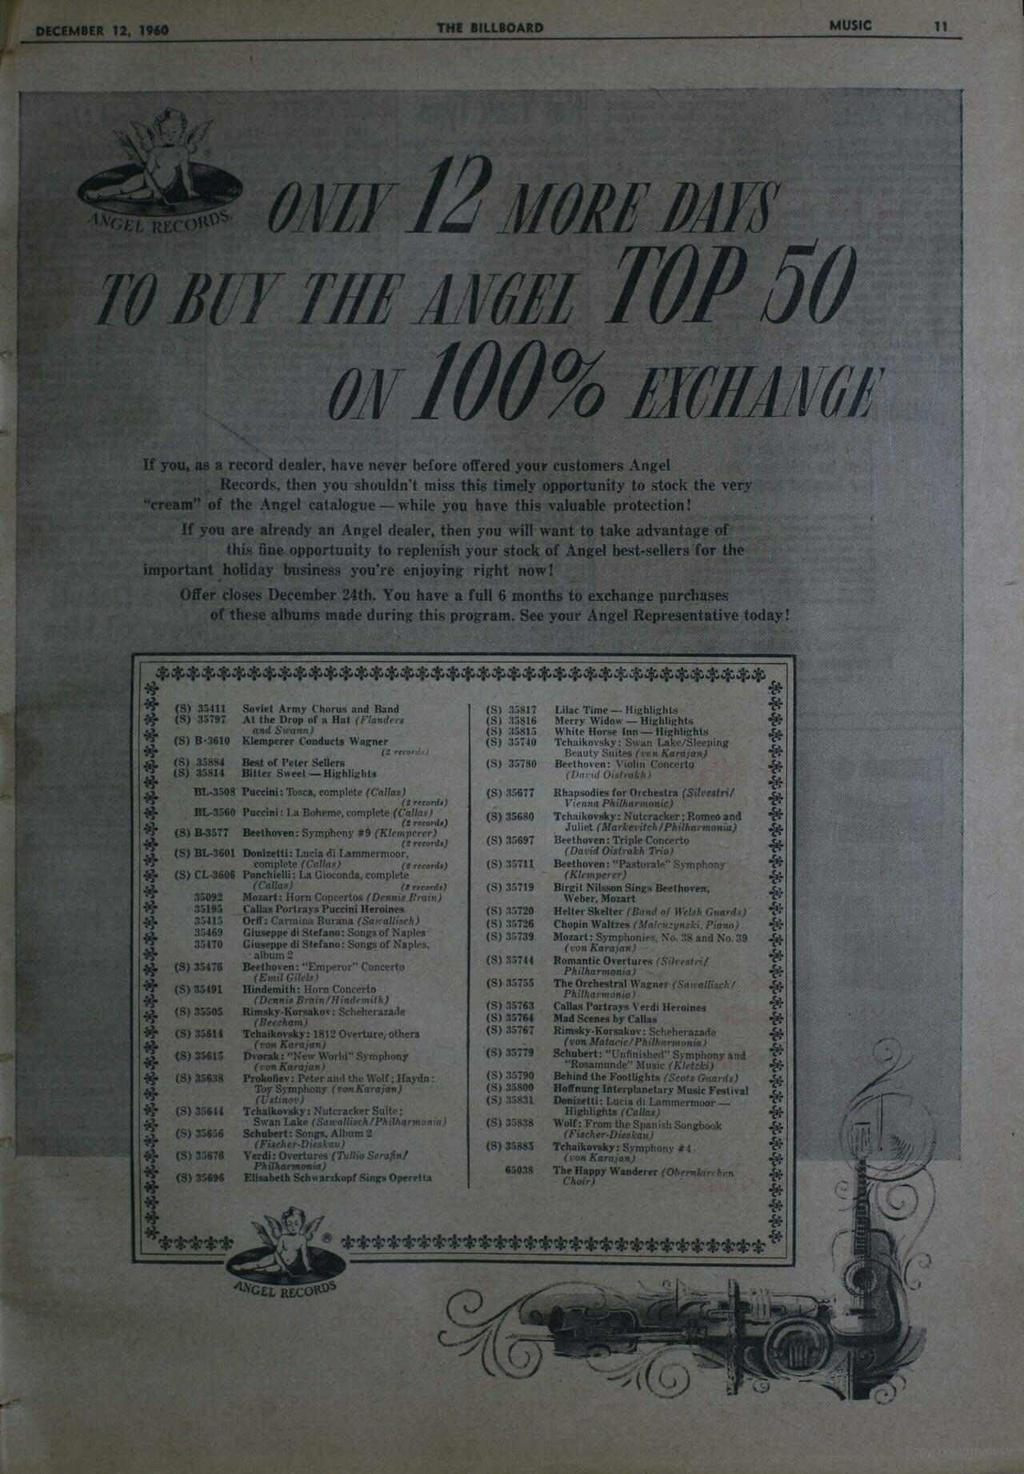 DECEMBER 12, 1960 THE BILLBOARD MUSIC 11 oiwy12 YON ki l ; l i t1/62z TOP 50 av 100% ficff41161 If you, as a record dealer. have never before offered your customers Angel Records.